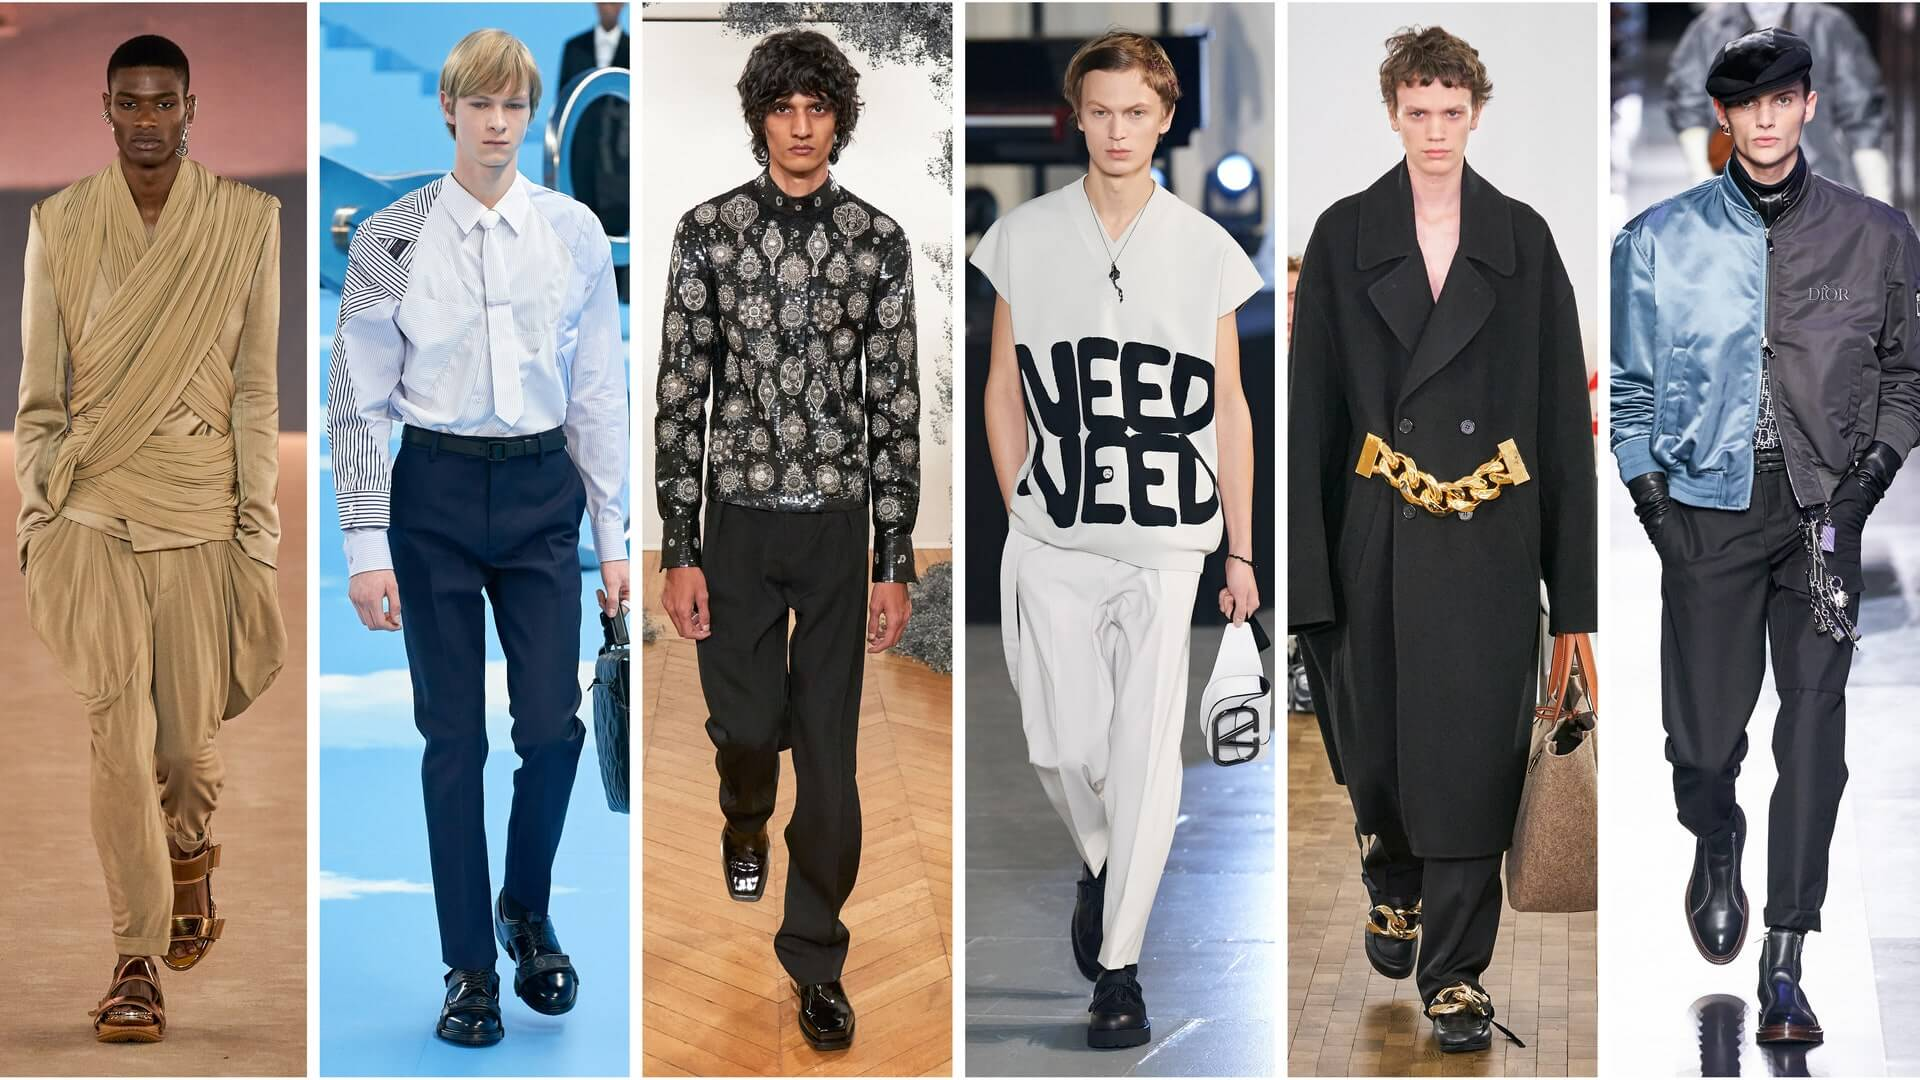 5 TOP FASHION TRENDS FROM MEN'S FASHION WEEK S/S 2020